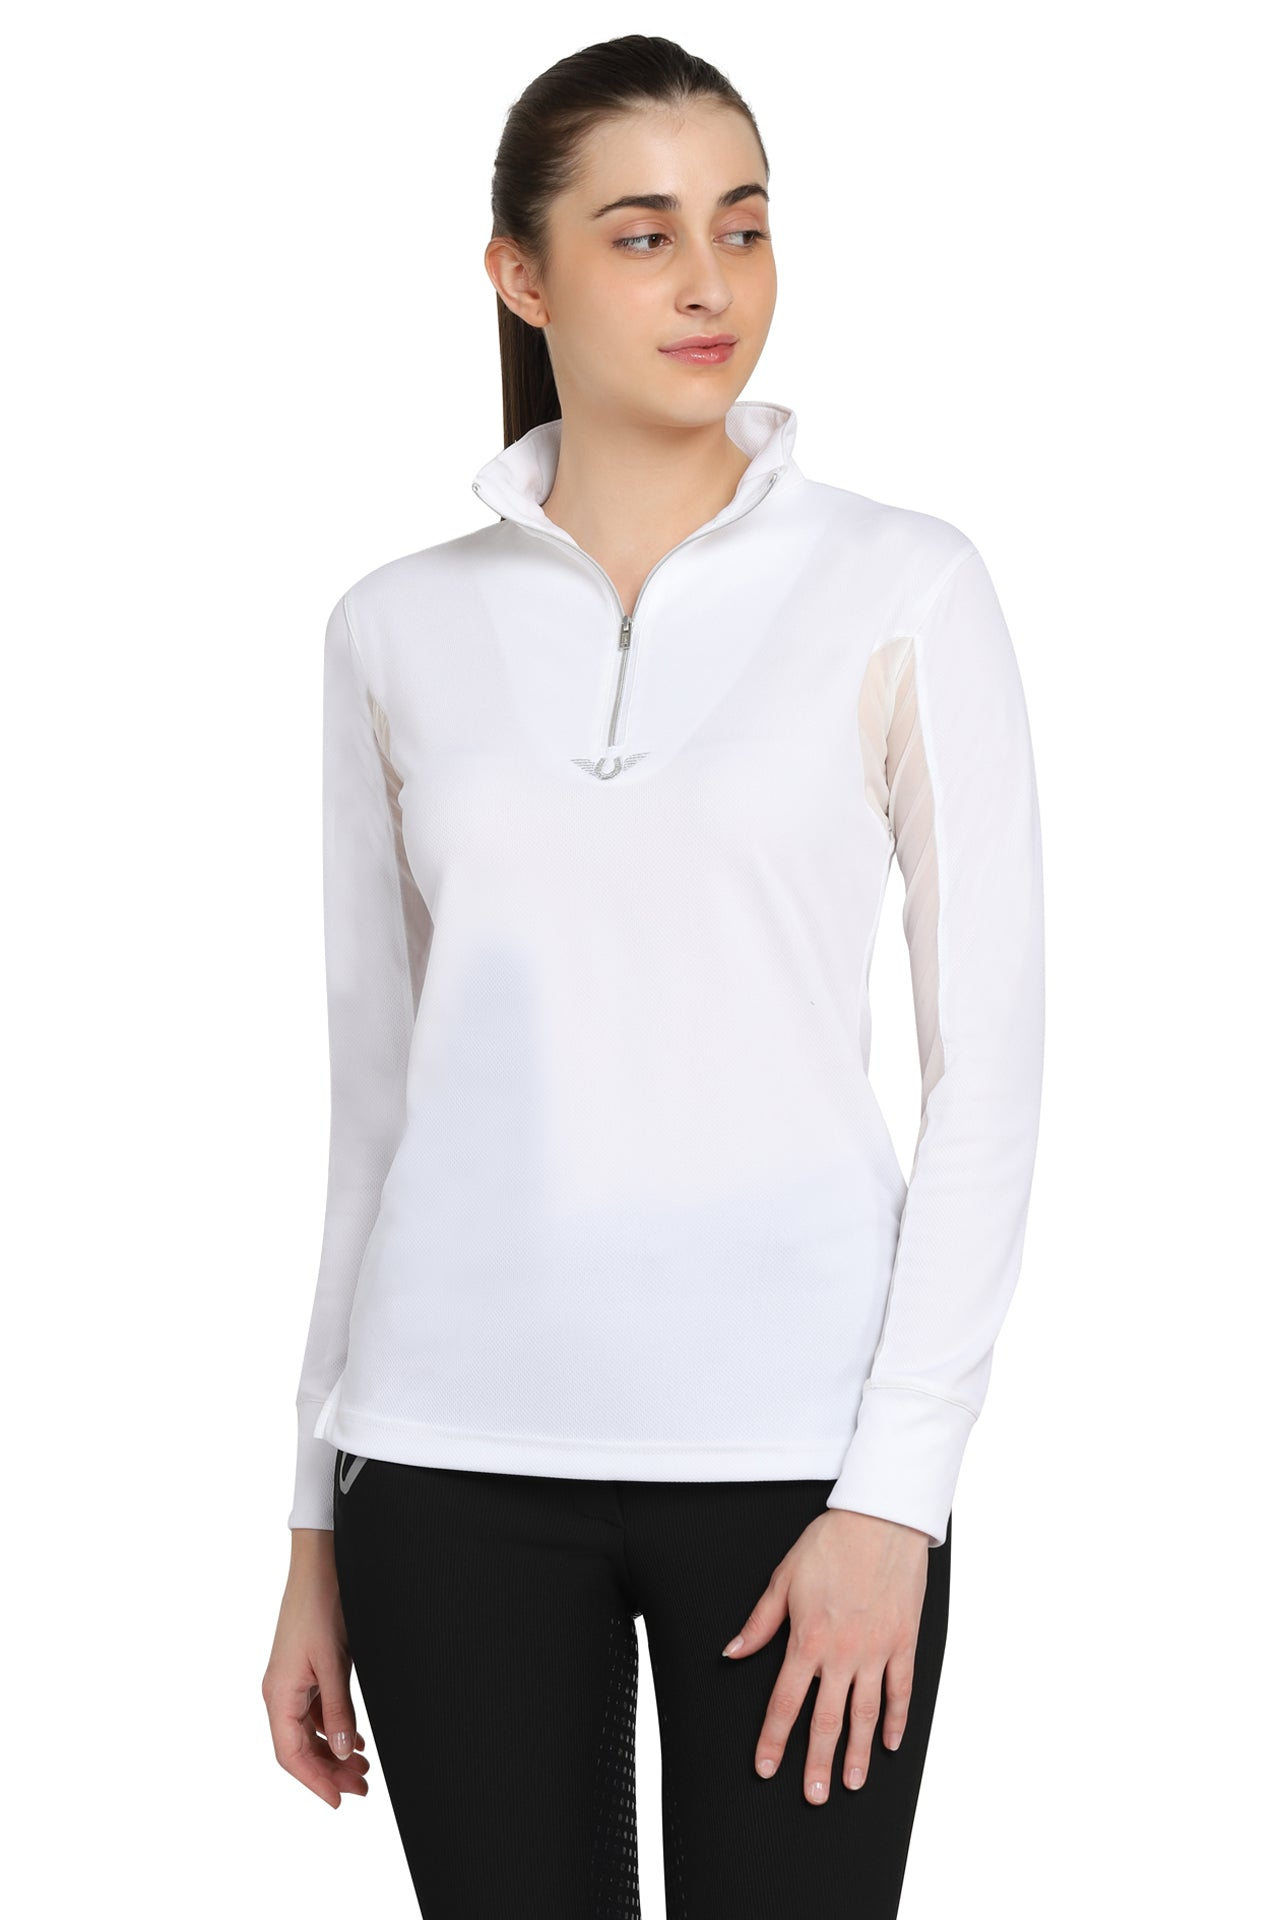 Ladies Ventilated Technical Long Sleeve Sport Shirt